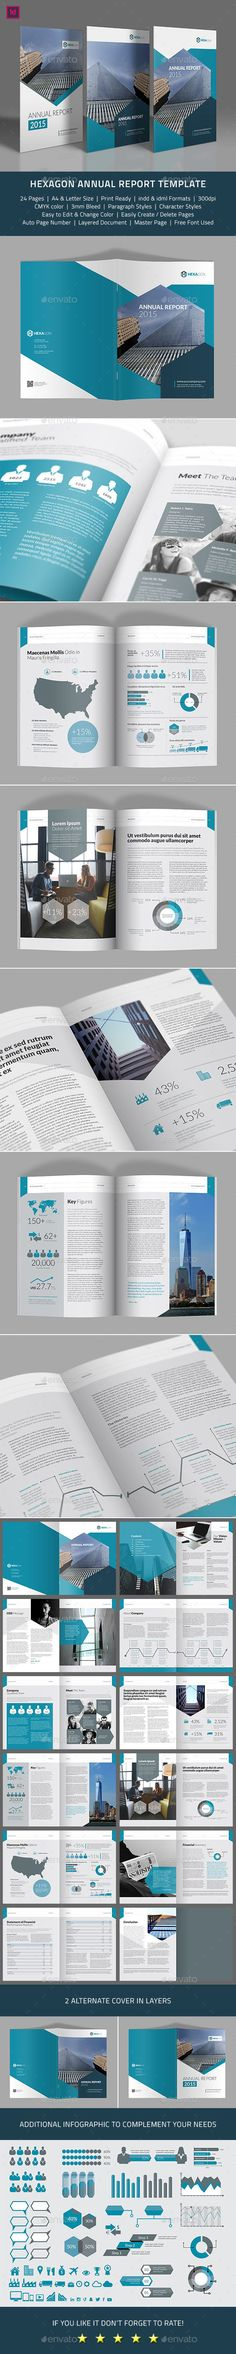 Annual Report Brochure | Brochure Template, Annual Reports And